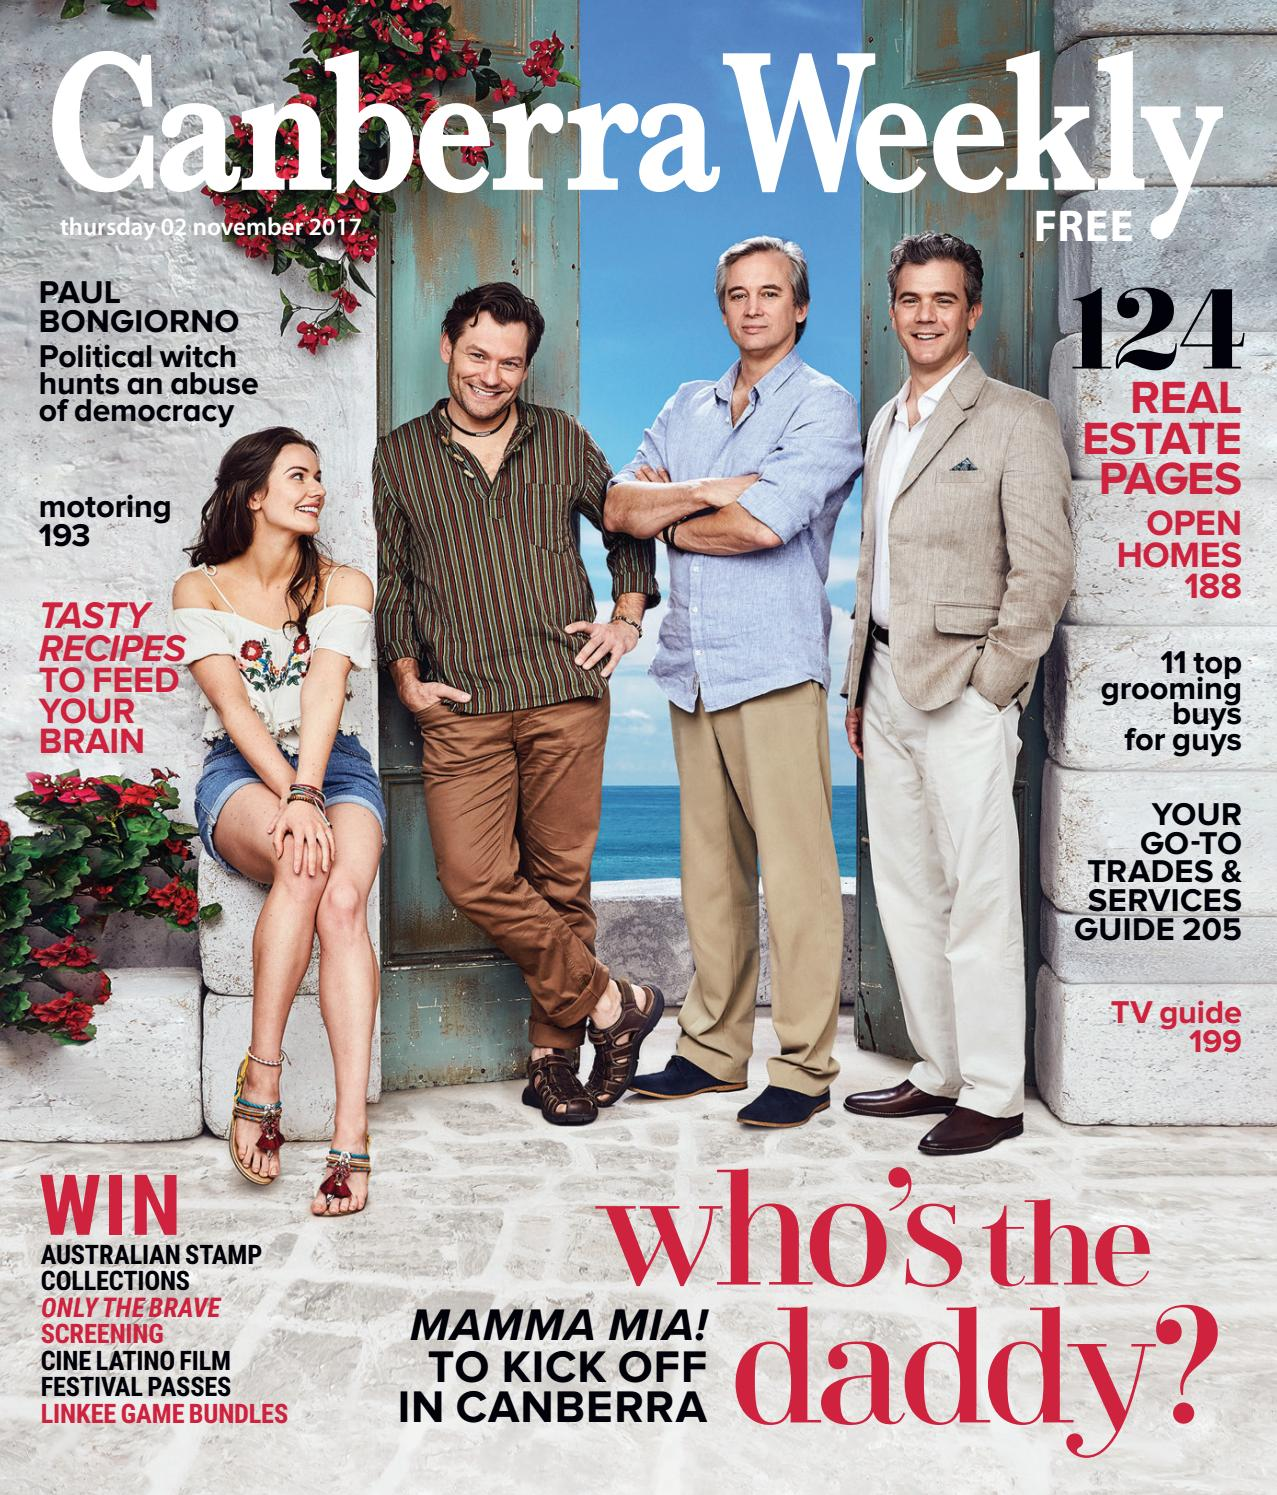 02 November 2017 By Canberra Weekly Magazine Issuu Sydney Xmas Lights 4 Drysdale Circuit Beaumont Hills Christmas